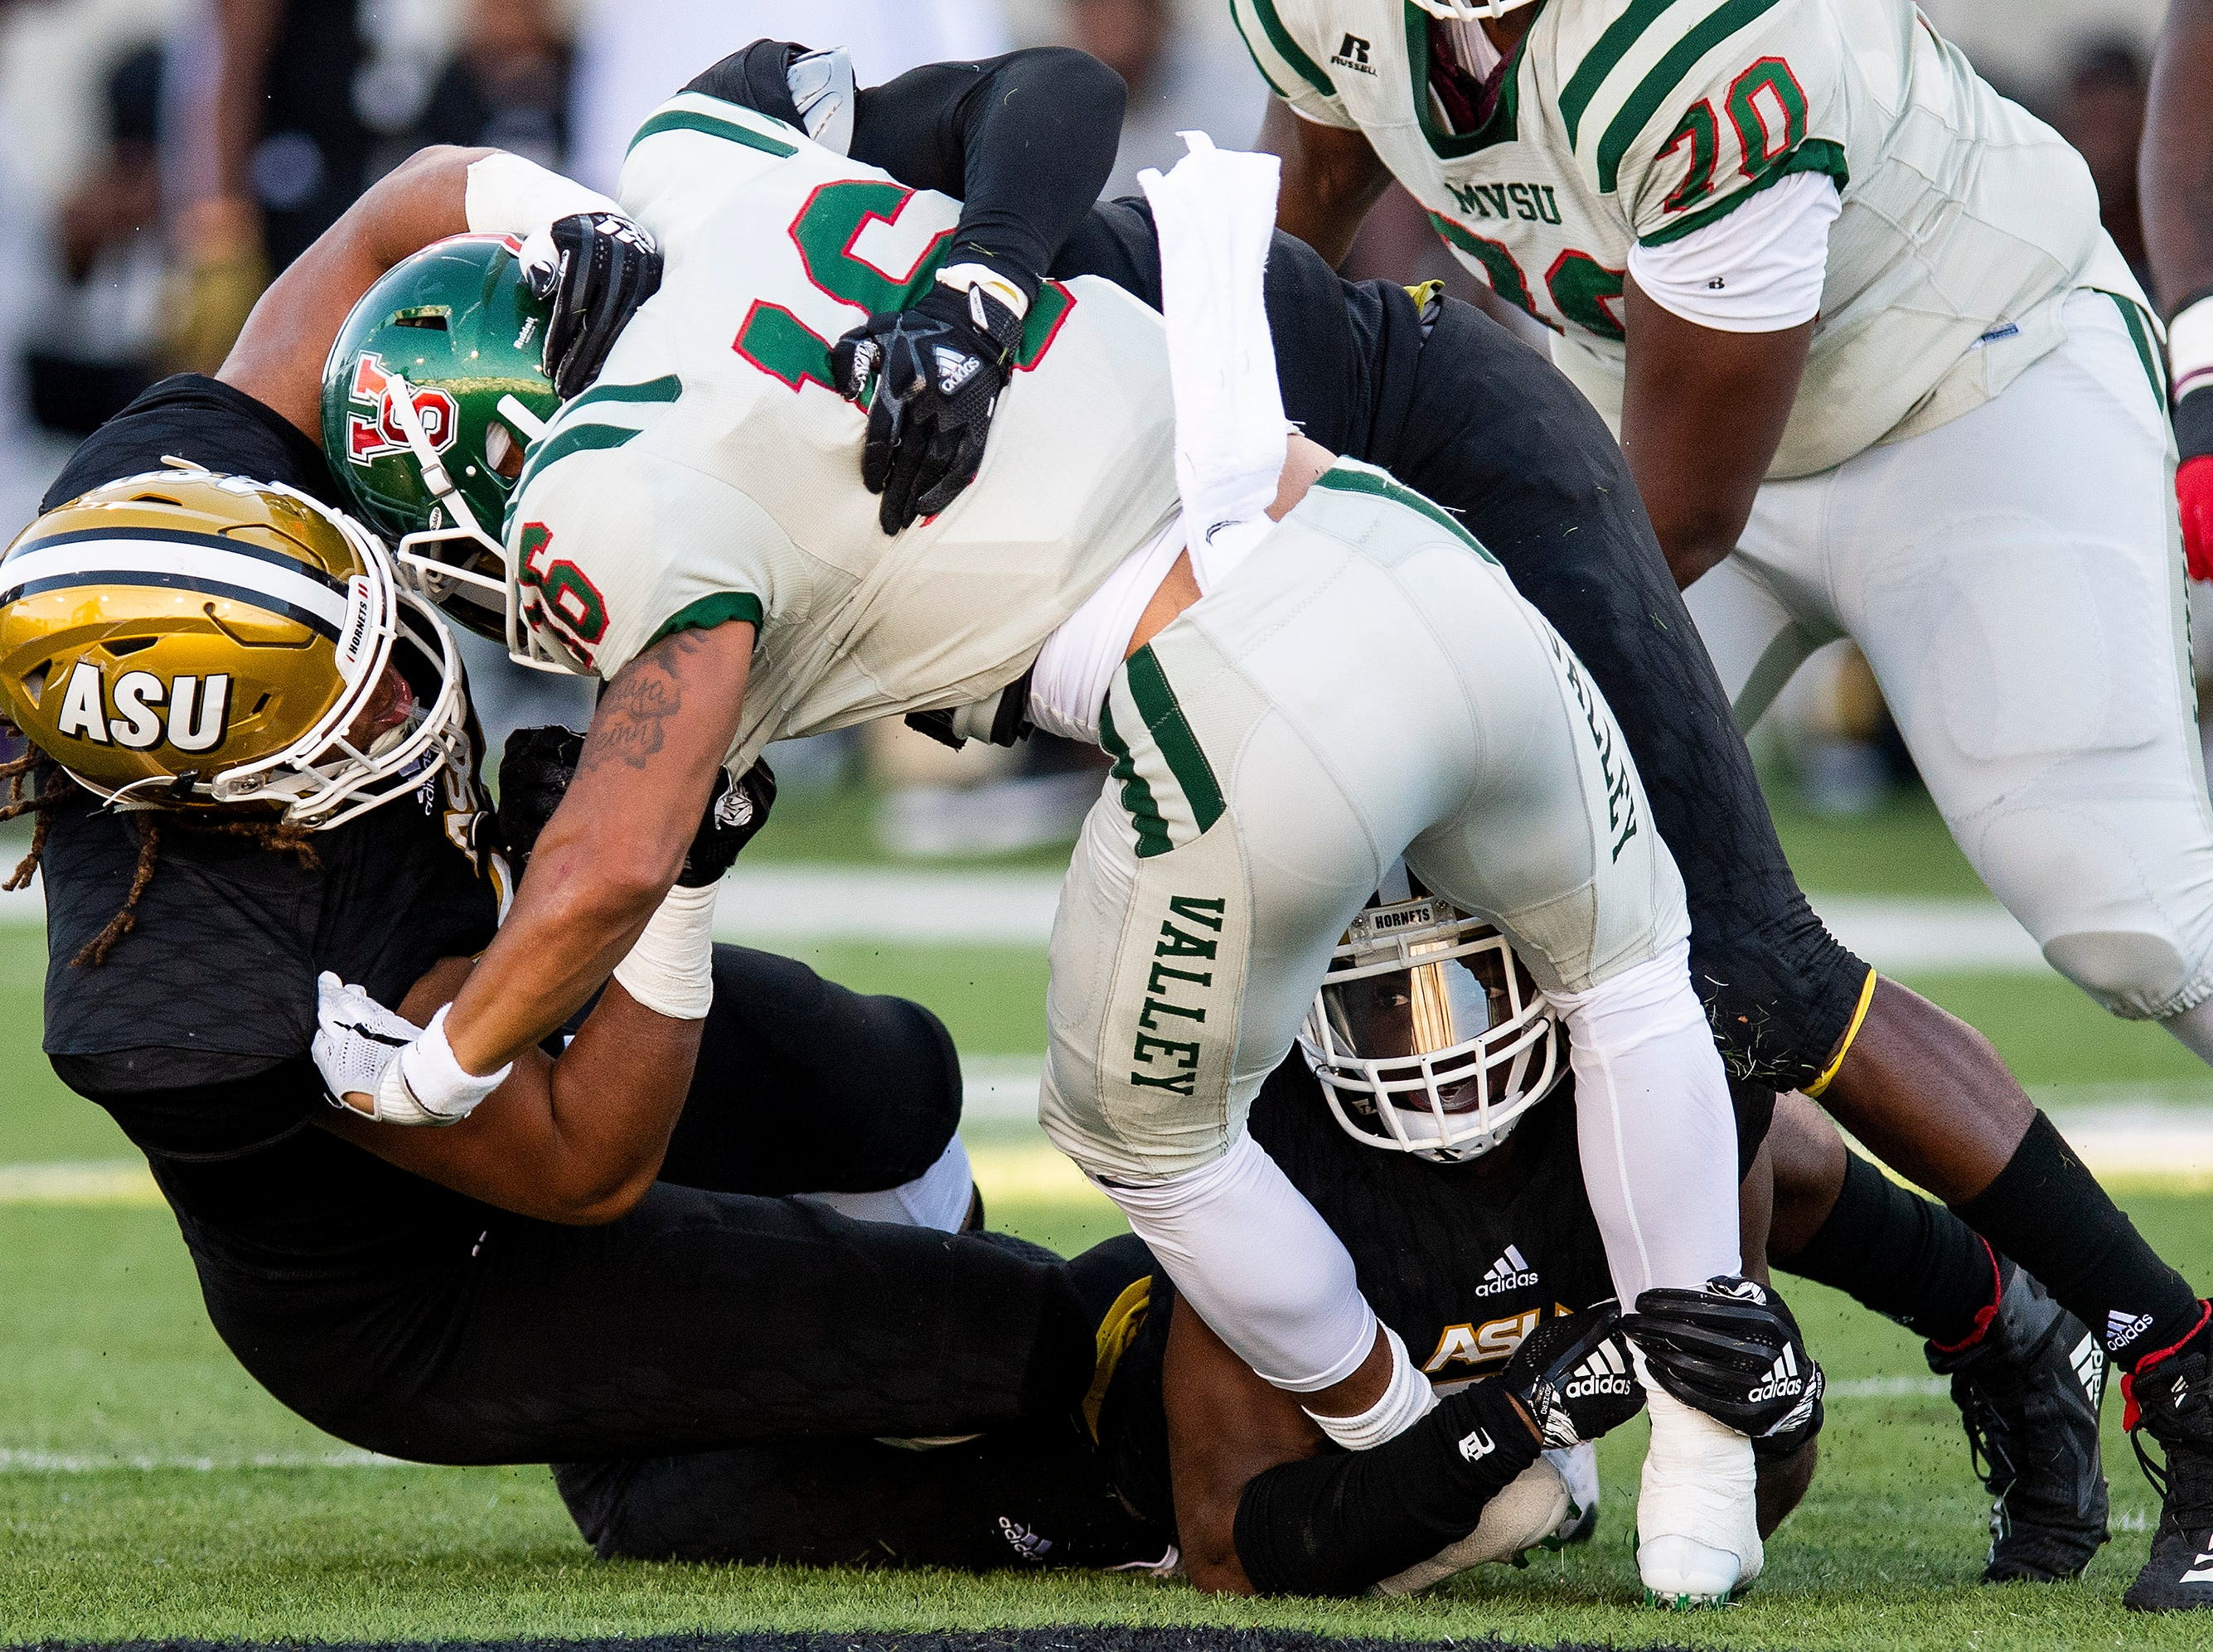 Alabama State University defensive lineman Randall Smith (77) and defensive lineman Trevor Goodrum (48)  stop Mississippi Valley State's Dejerric Bryant (16) in first half action of the Turkey Day Classic at Hornet Stadium on the ASU campus in Montgomery, Ala., on Thanksgiving Day, Thursday November 22, 2018.